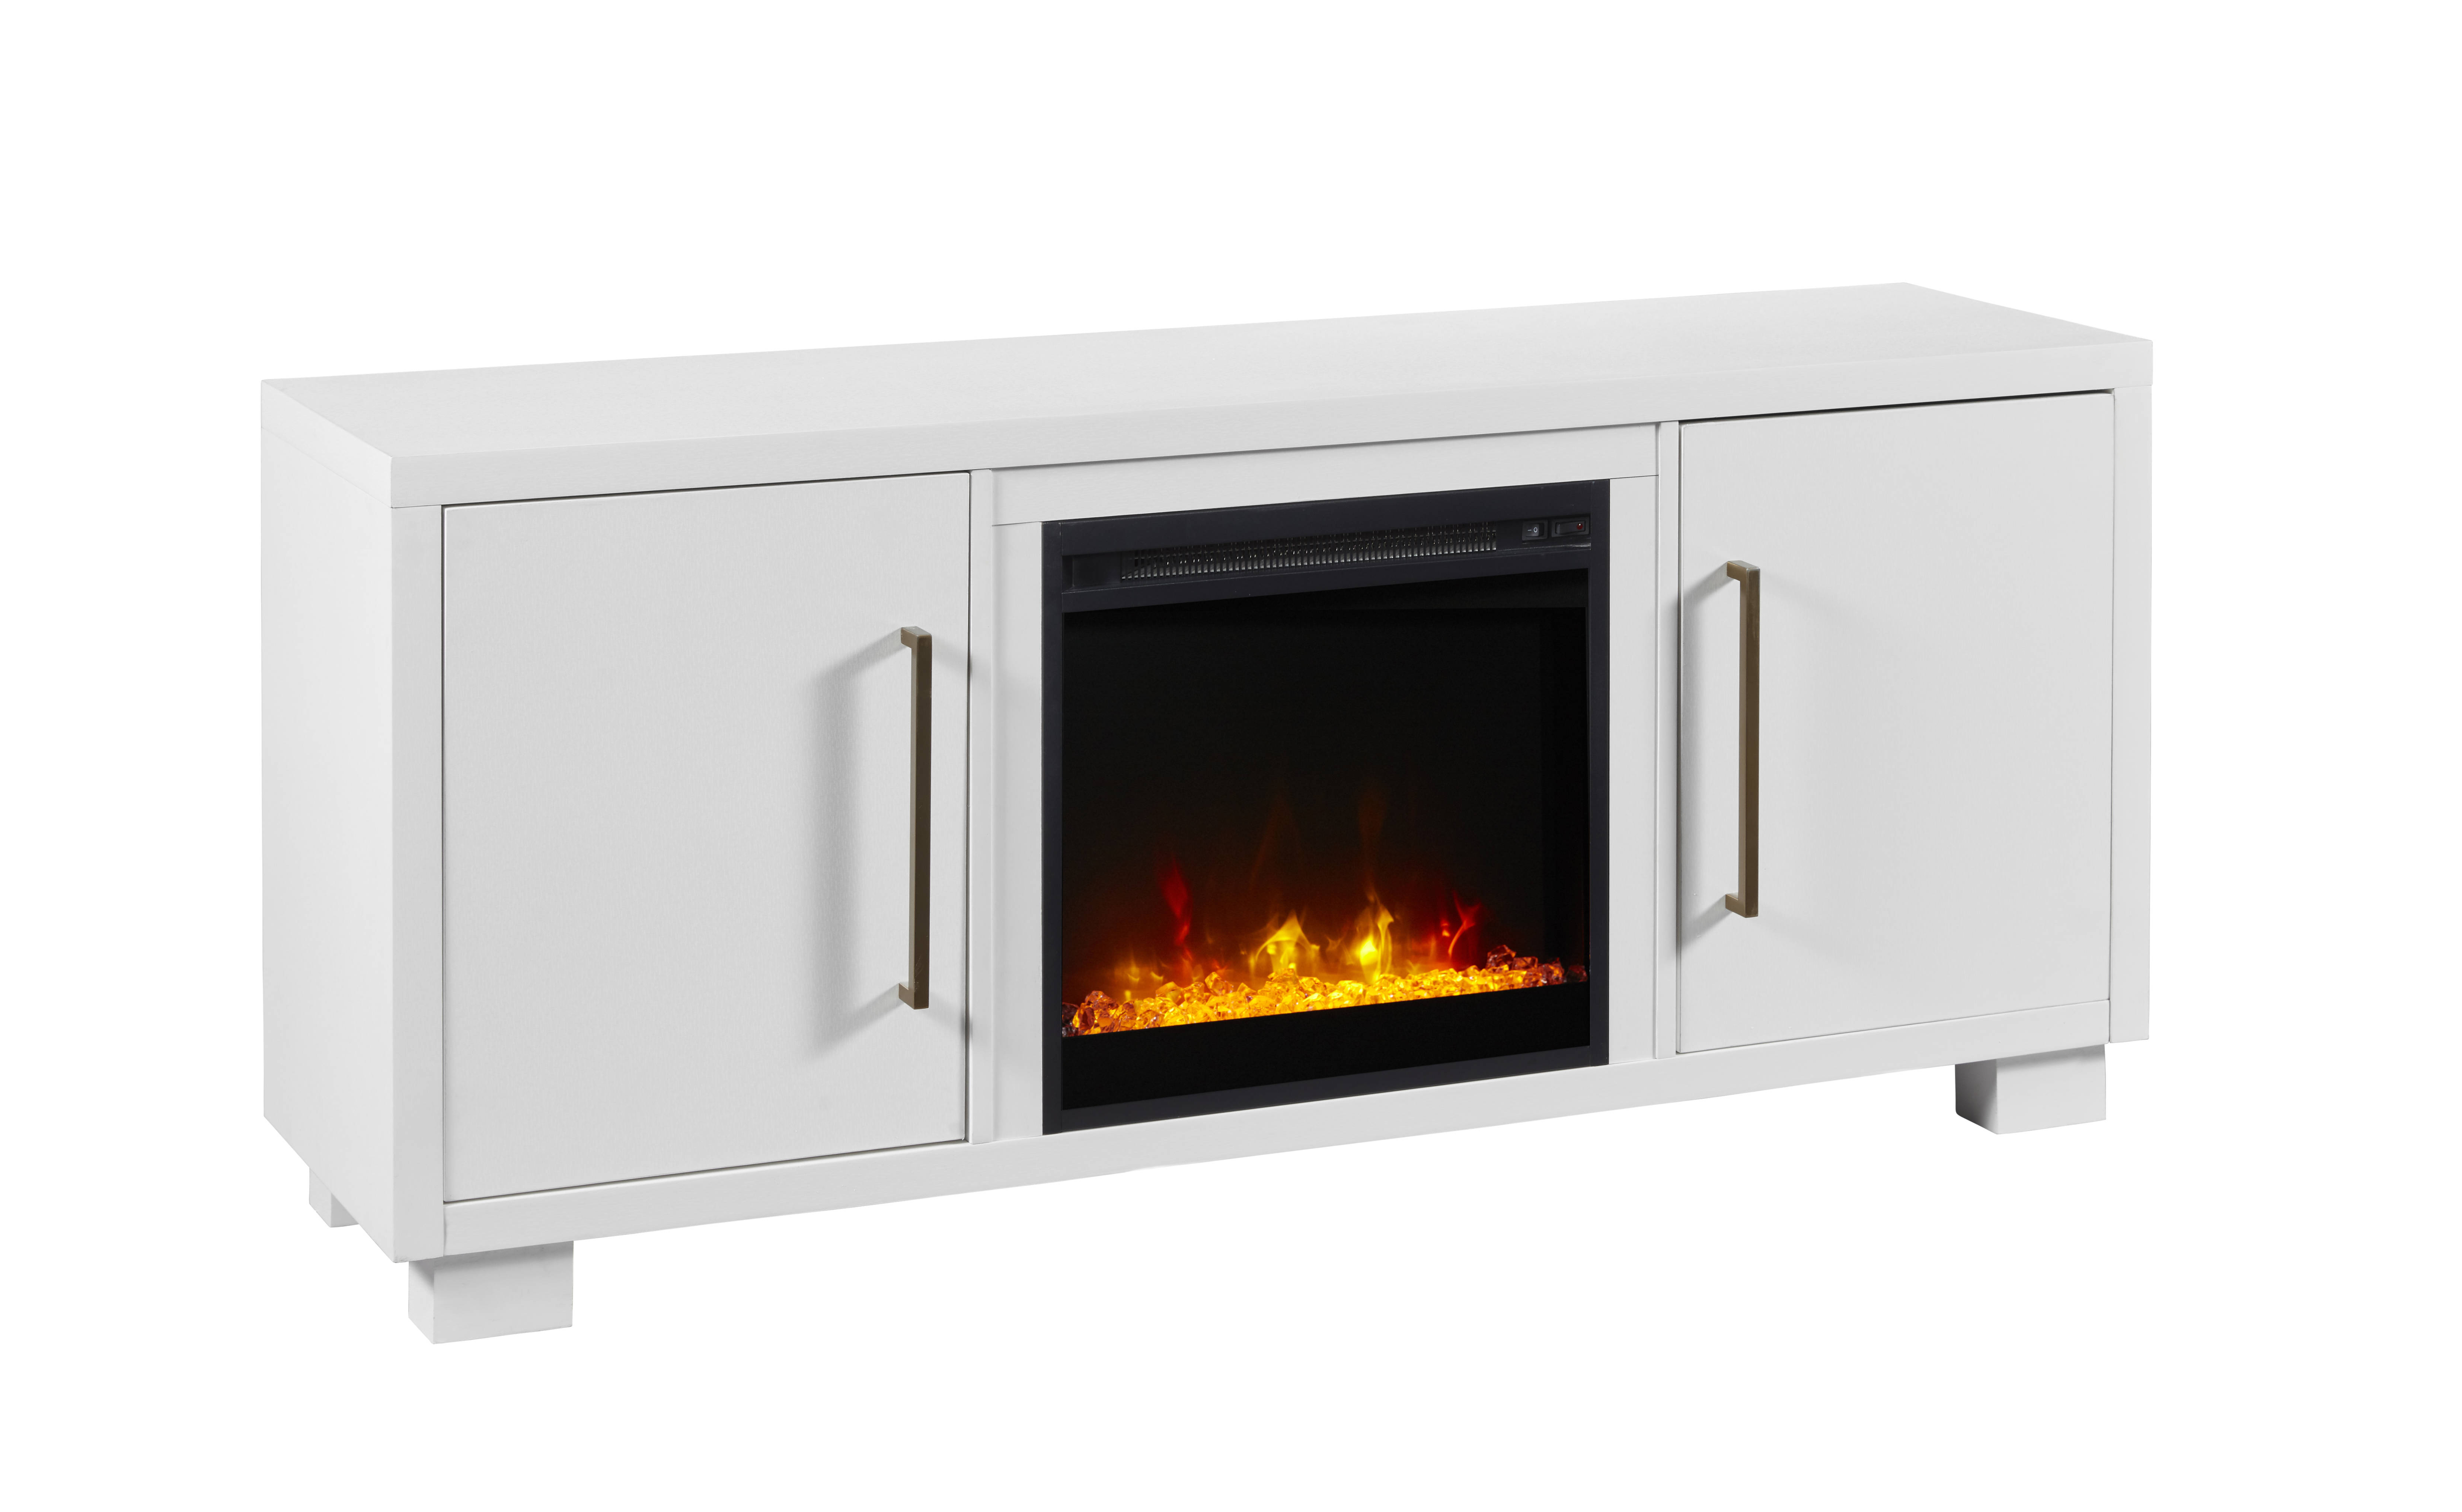 Dimplex C3 Shelby White Tv Stand Electric Fireplace The Classy Home